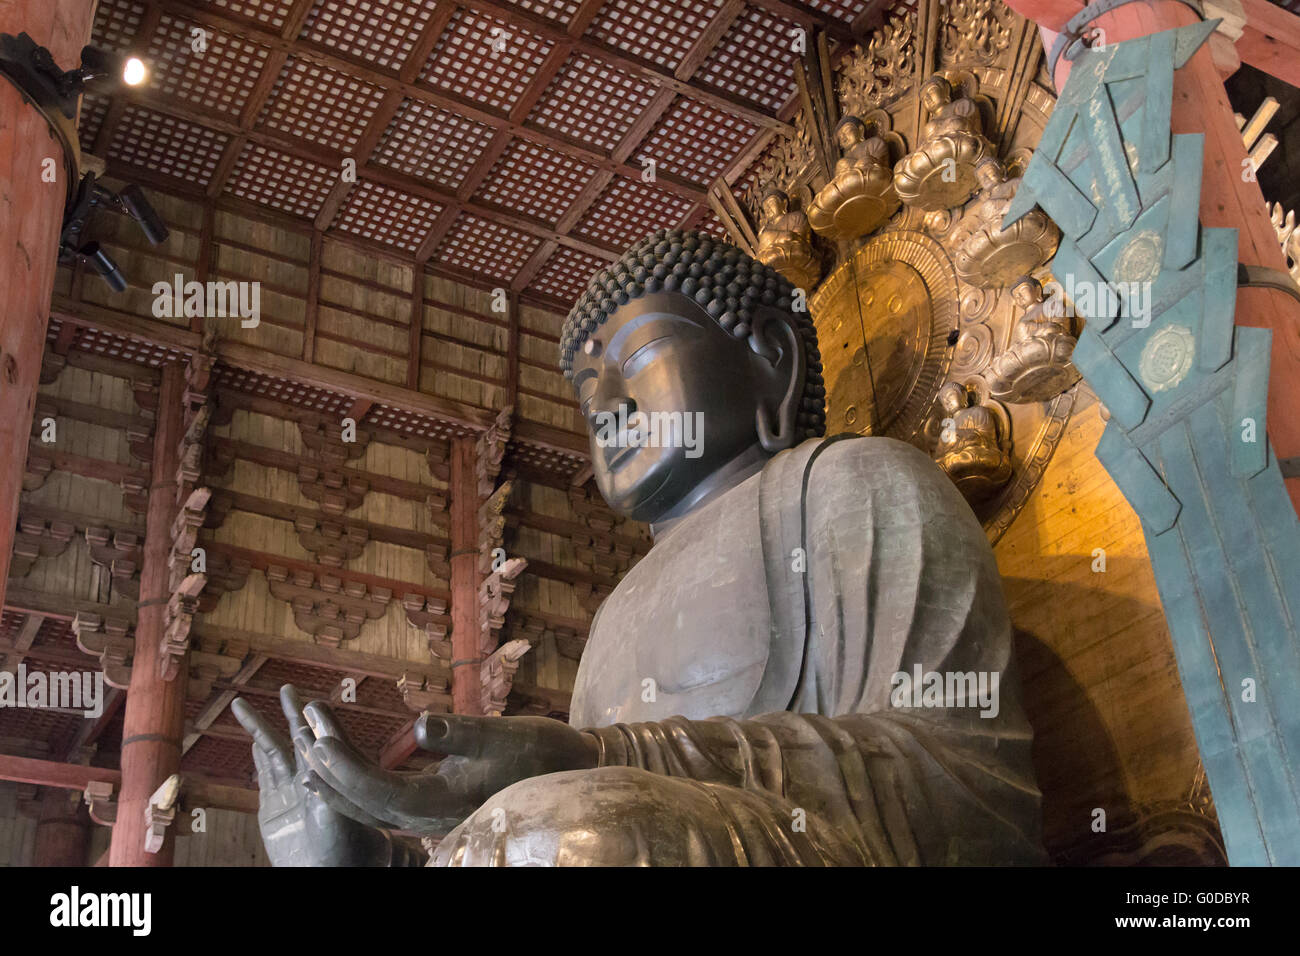 World largest bronze buddha statue in the Todai-ji temple in Nara, Japan. - Stock Image